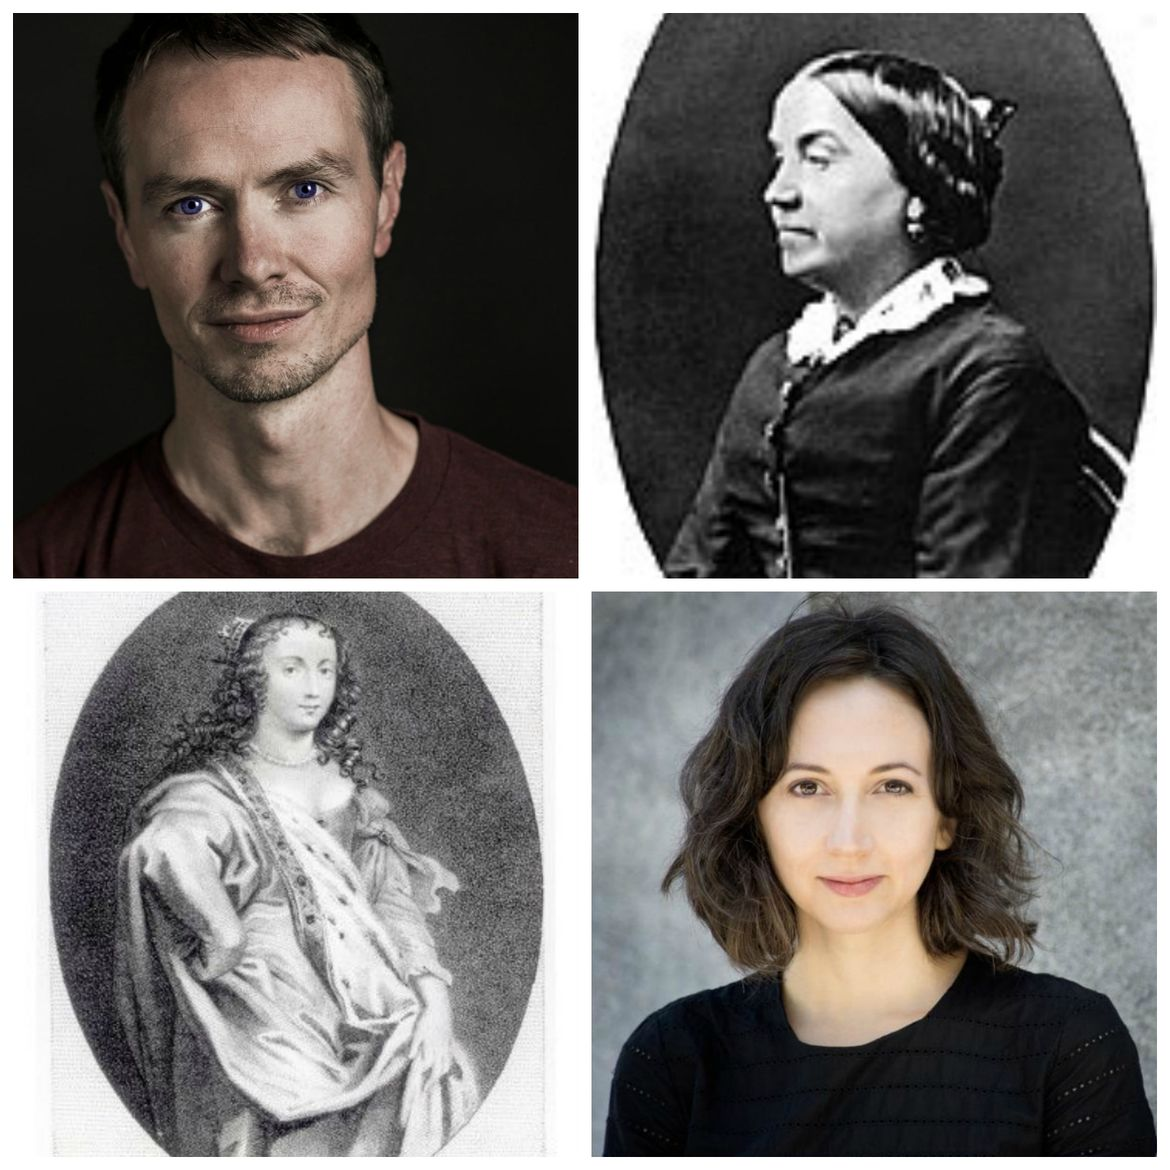 Cover Photo: Every Novel Is Historical: A Conversation by Gavin McCrea and Danielle Dutton